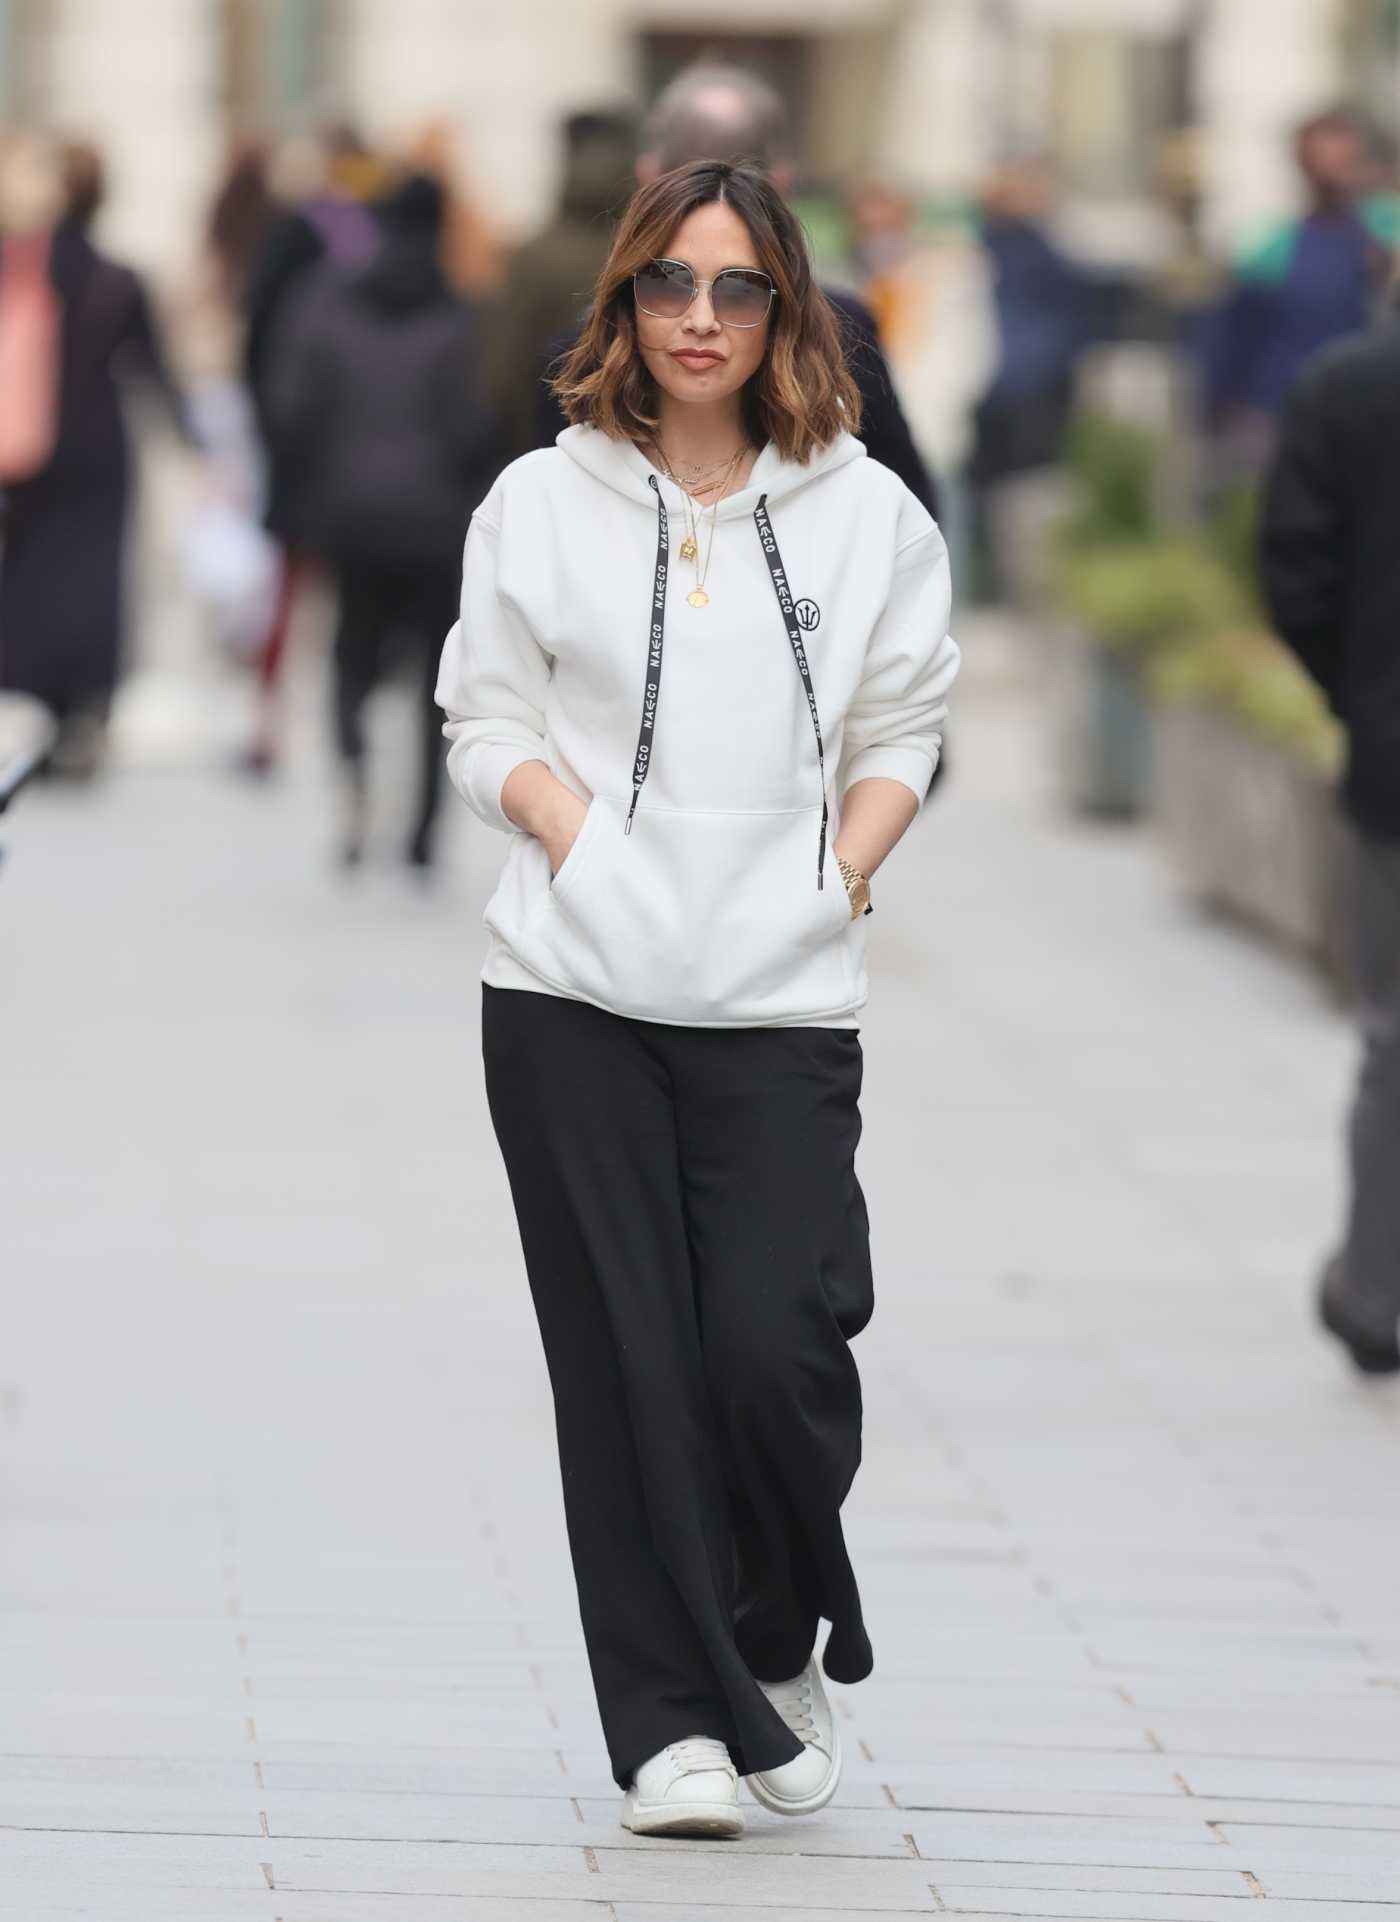 Myleene Klass in a White Hoodie Arrives at the Smooth Radio in London 02/20/2021